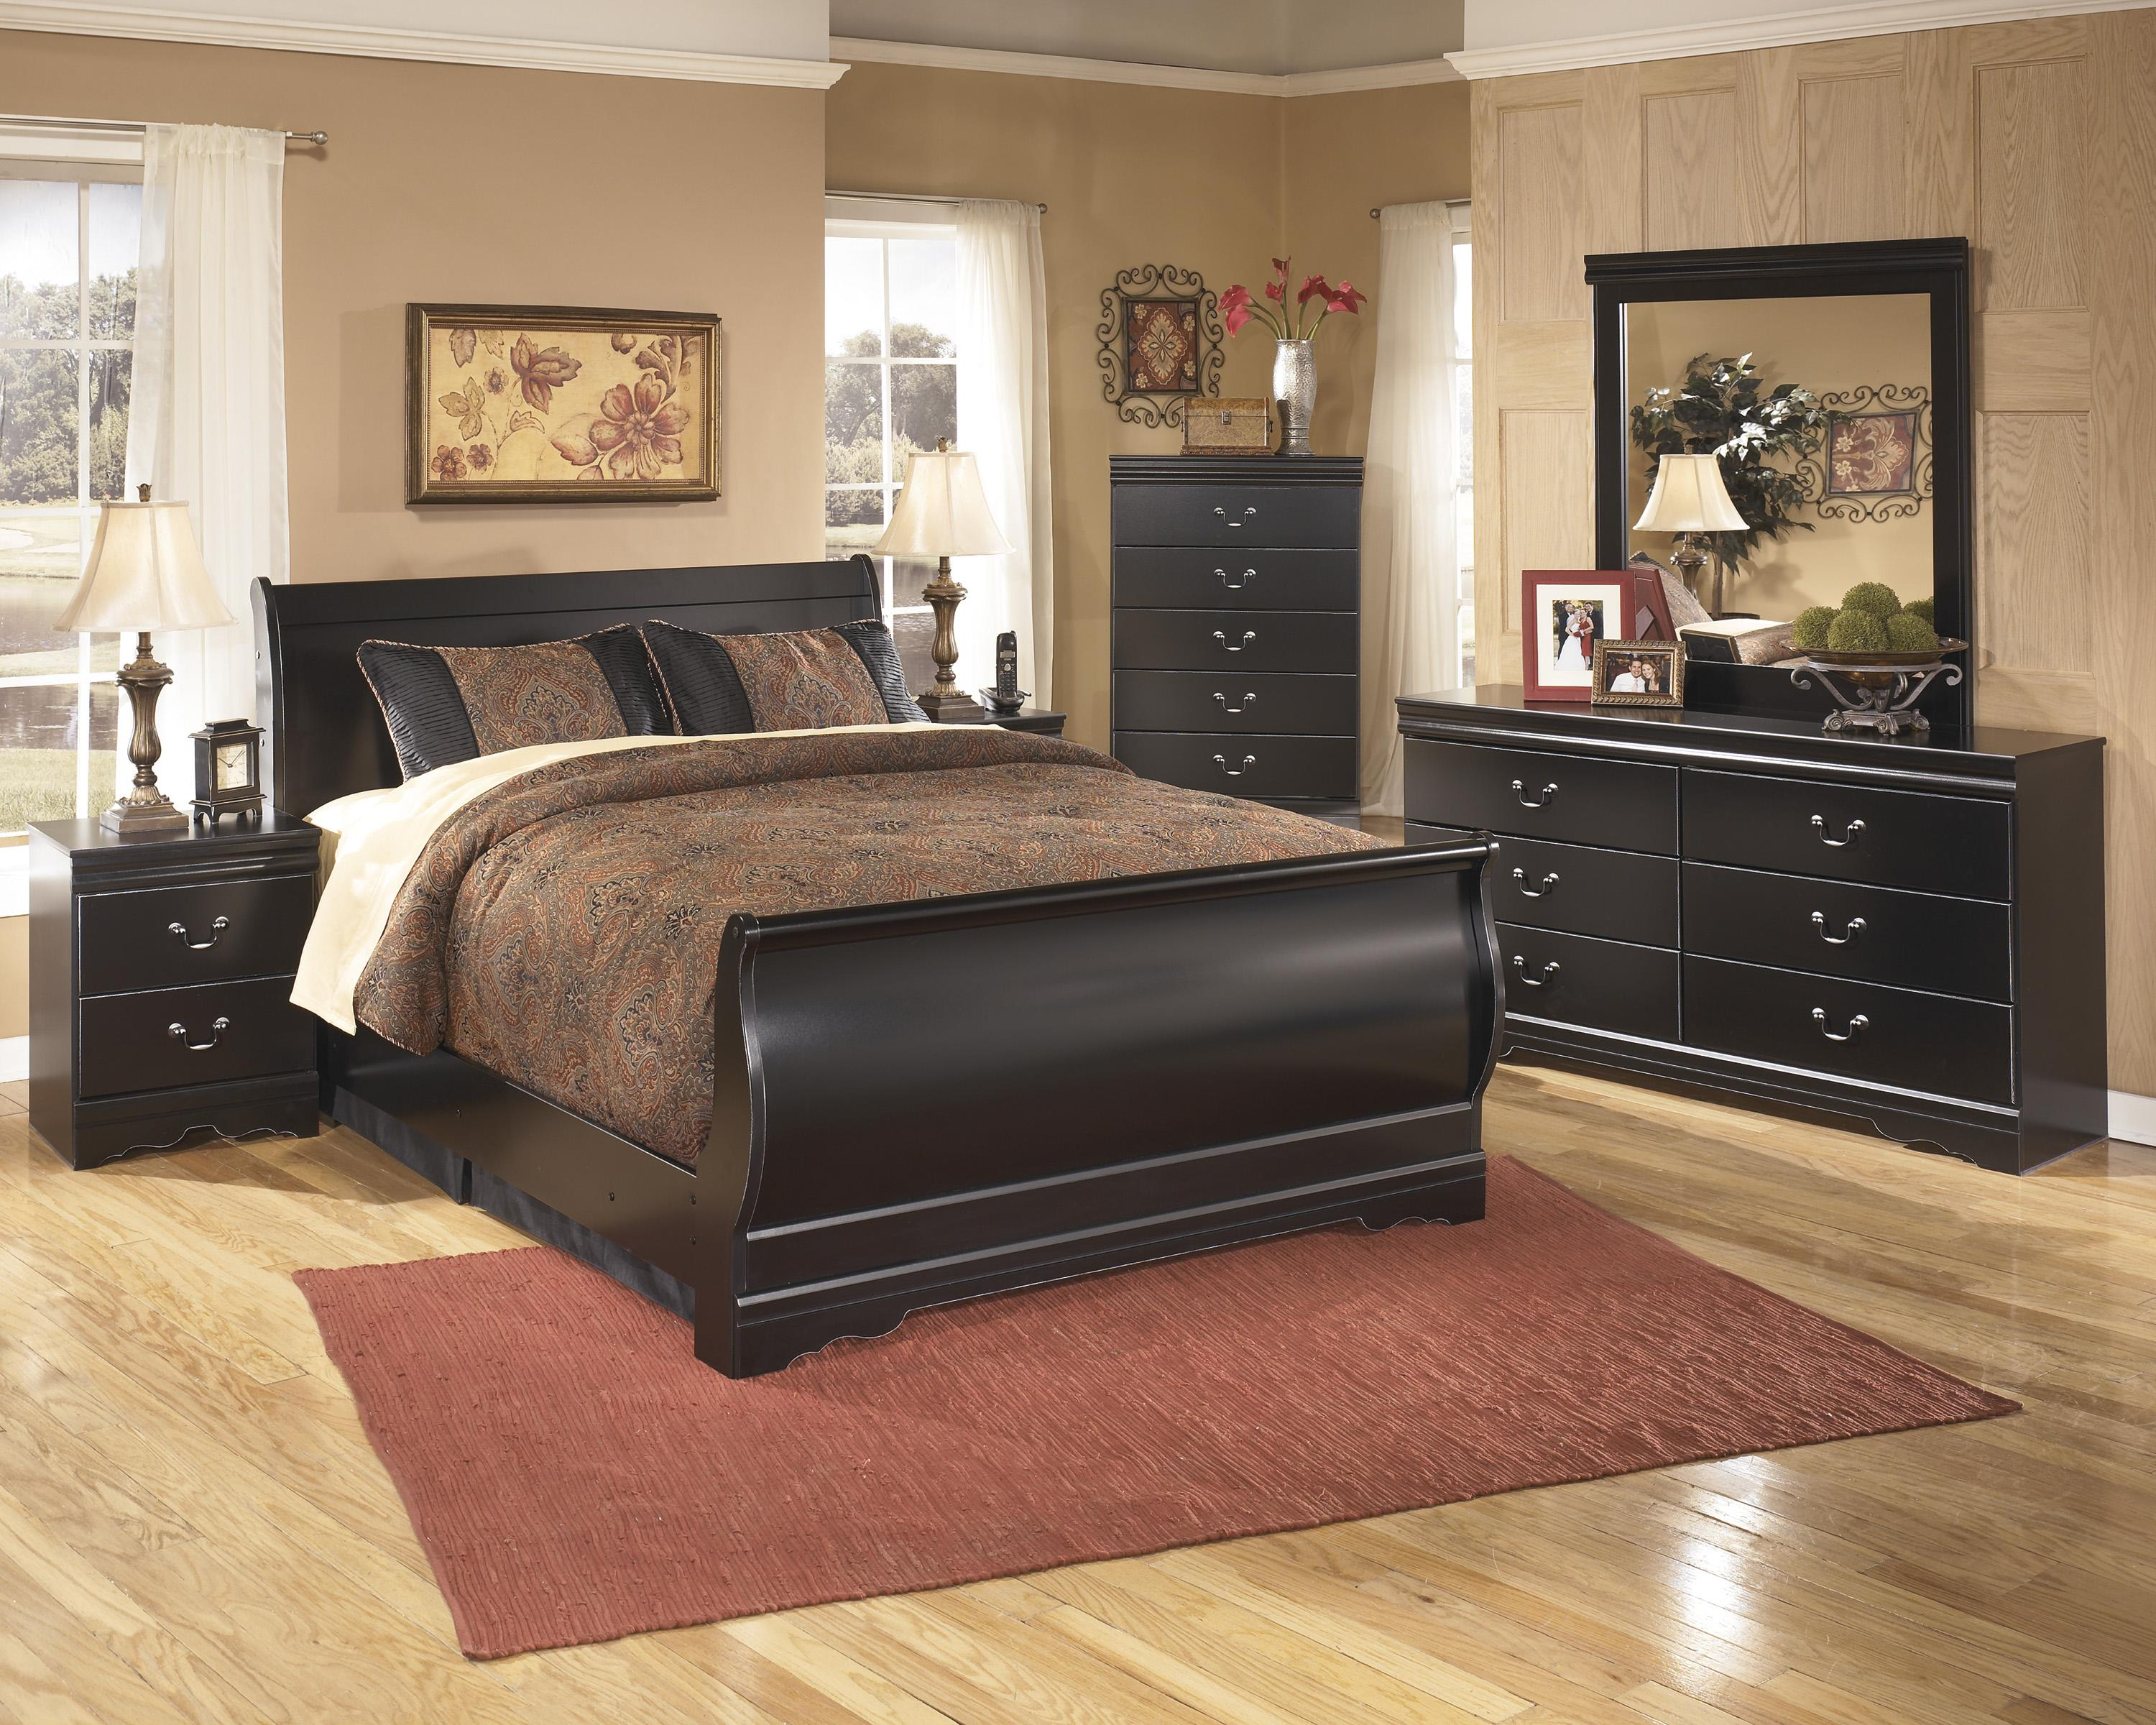 Signature Design by Ashley Huey Vineyard Full Bedroom Group - Item Number: B128 F Bedroom Group 1